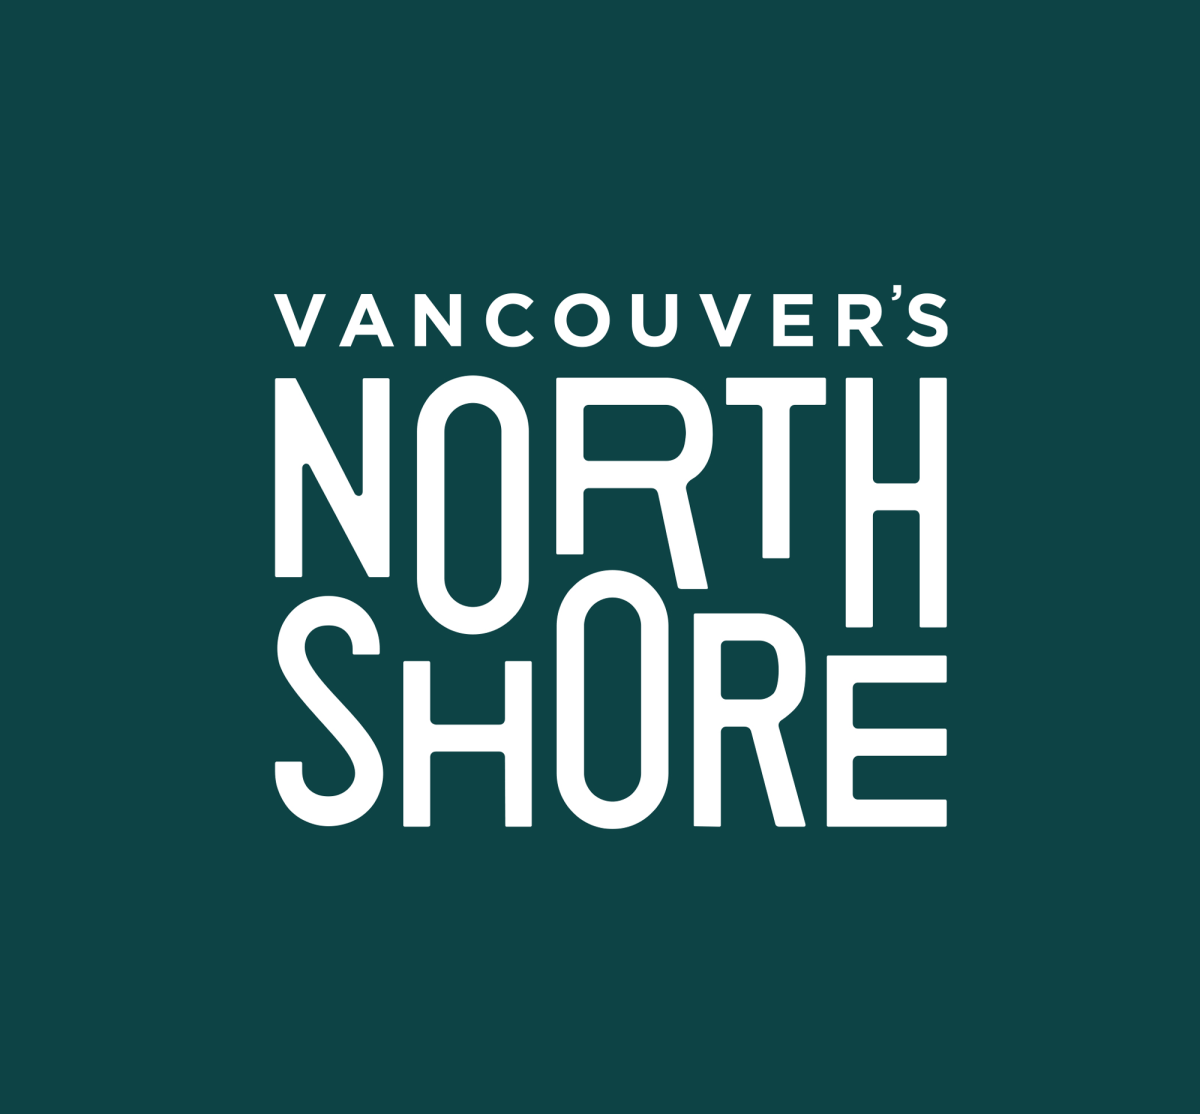 vancouvers_north_shore_logo